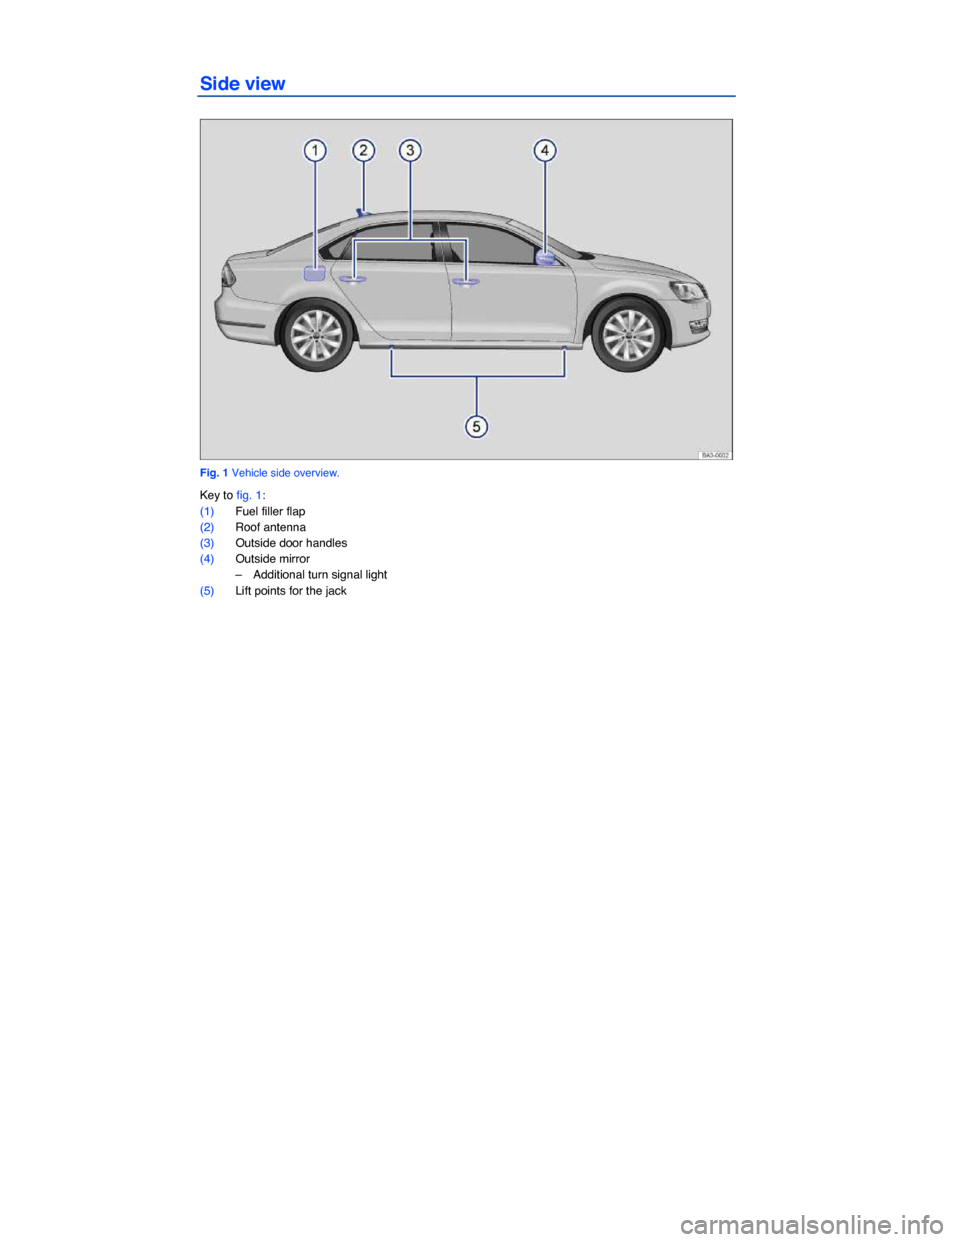 Volkswagen Passat 2014 B8 6g Owners Manual 2013 Engine Diagram